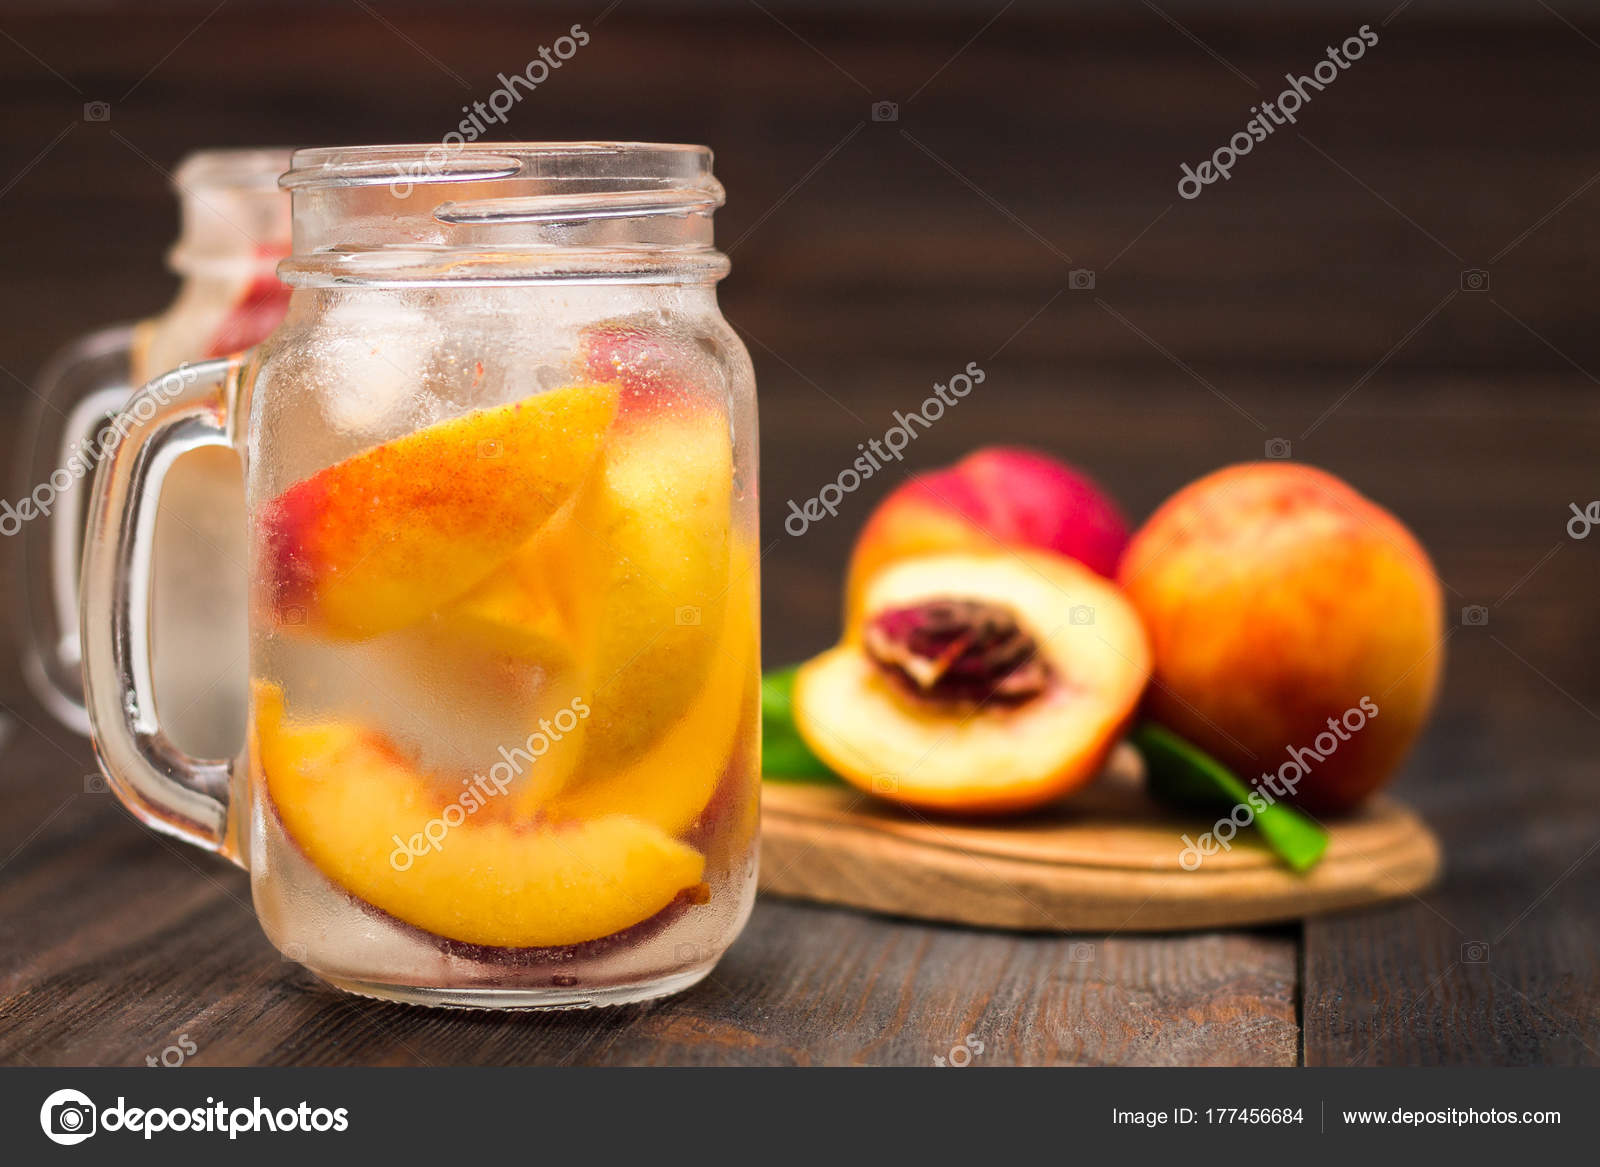 Mason Jar Glass Of Homemade Peach Iced Water On A Rustic Wooden Background Stock